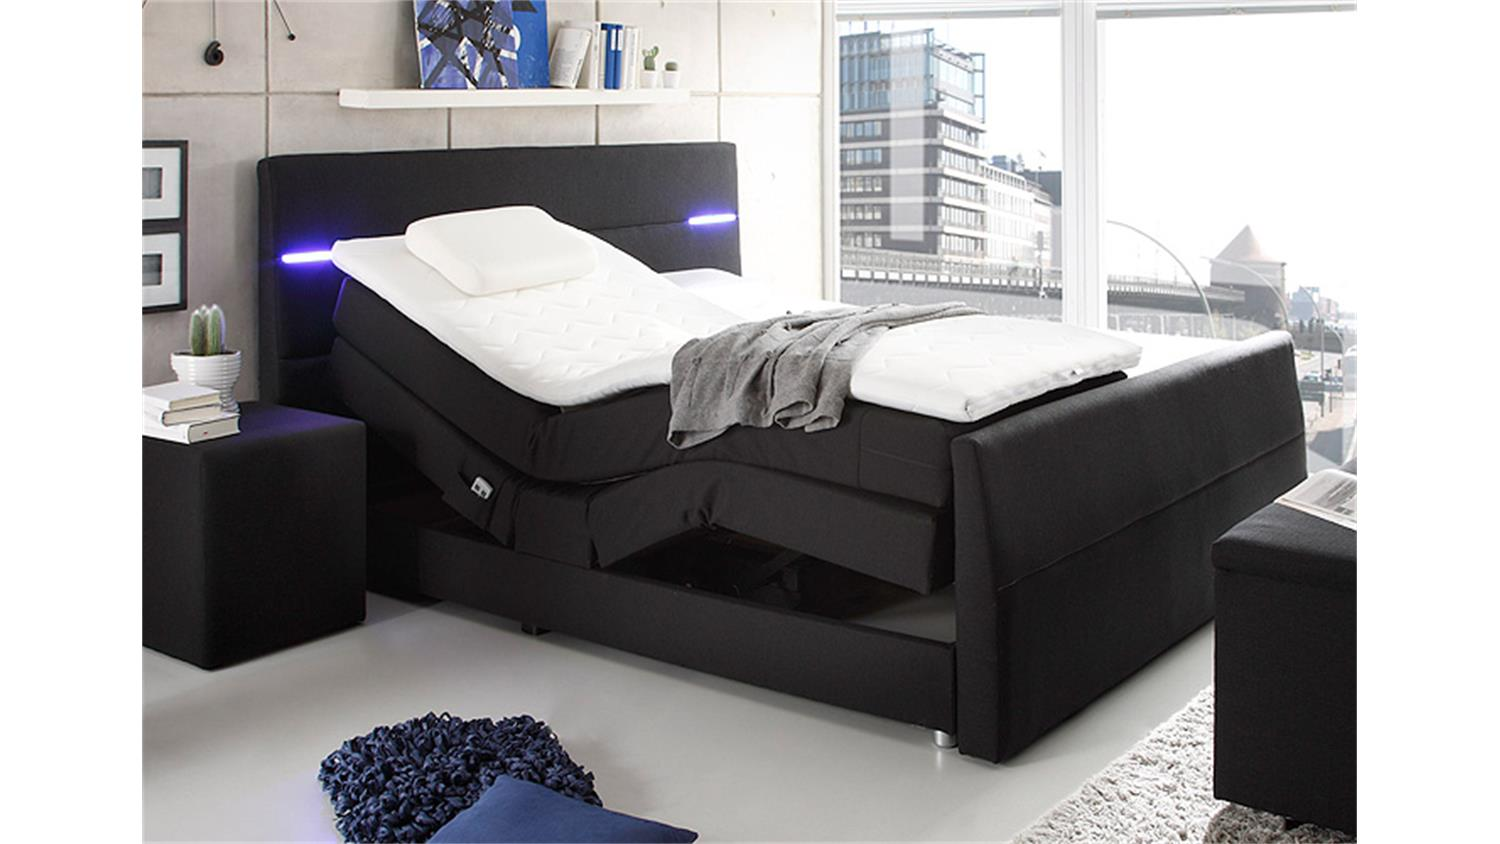 boxspringbett mit motor test boxspringbett mit motor test ausgezeichnet boxspringbett mit motor. Black Bedroom Furniture Sets. Home Design Ideas